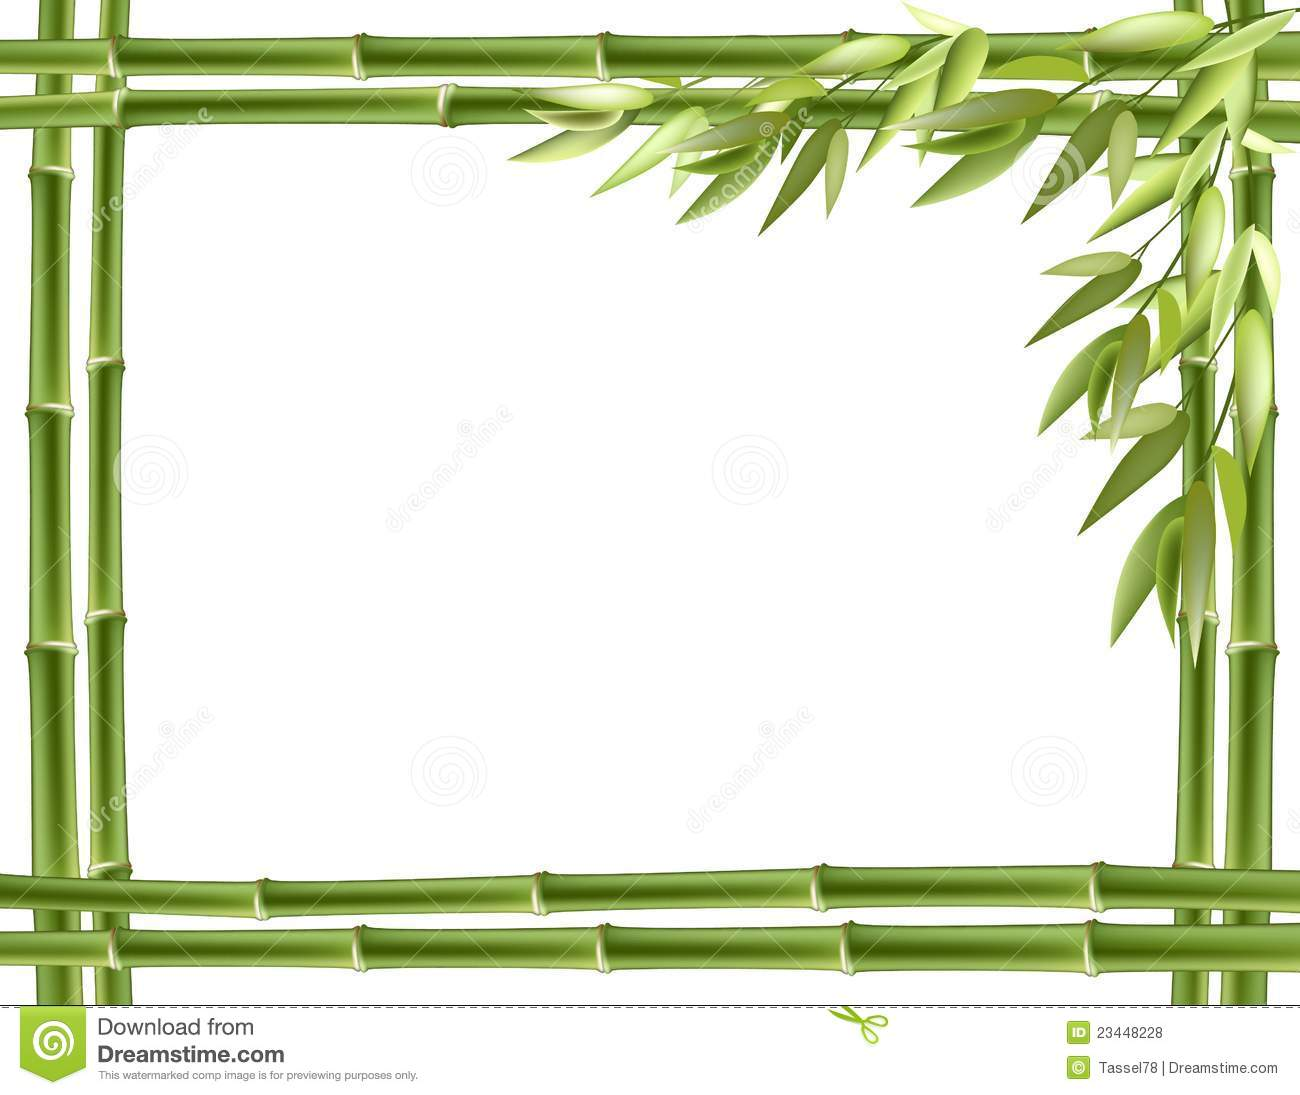 clipart stock Bamboo transparent frame borders. Clipart free for